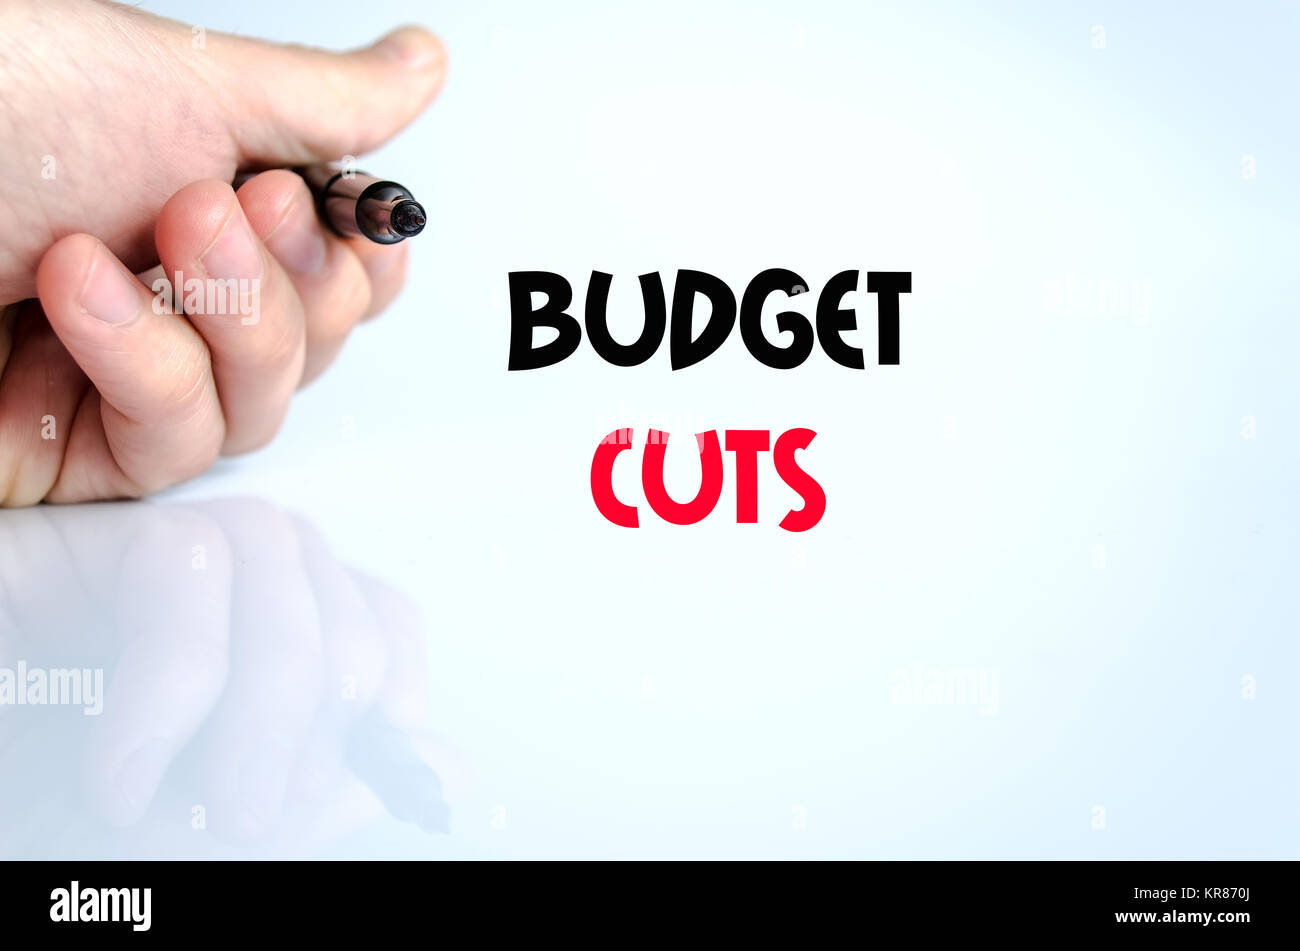 Budget cuts text concept - Stock Image